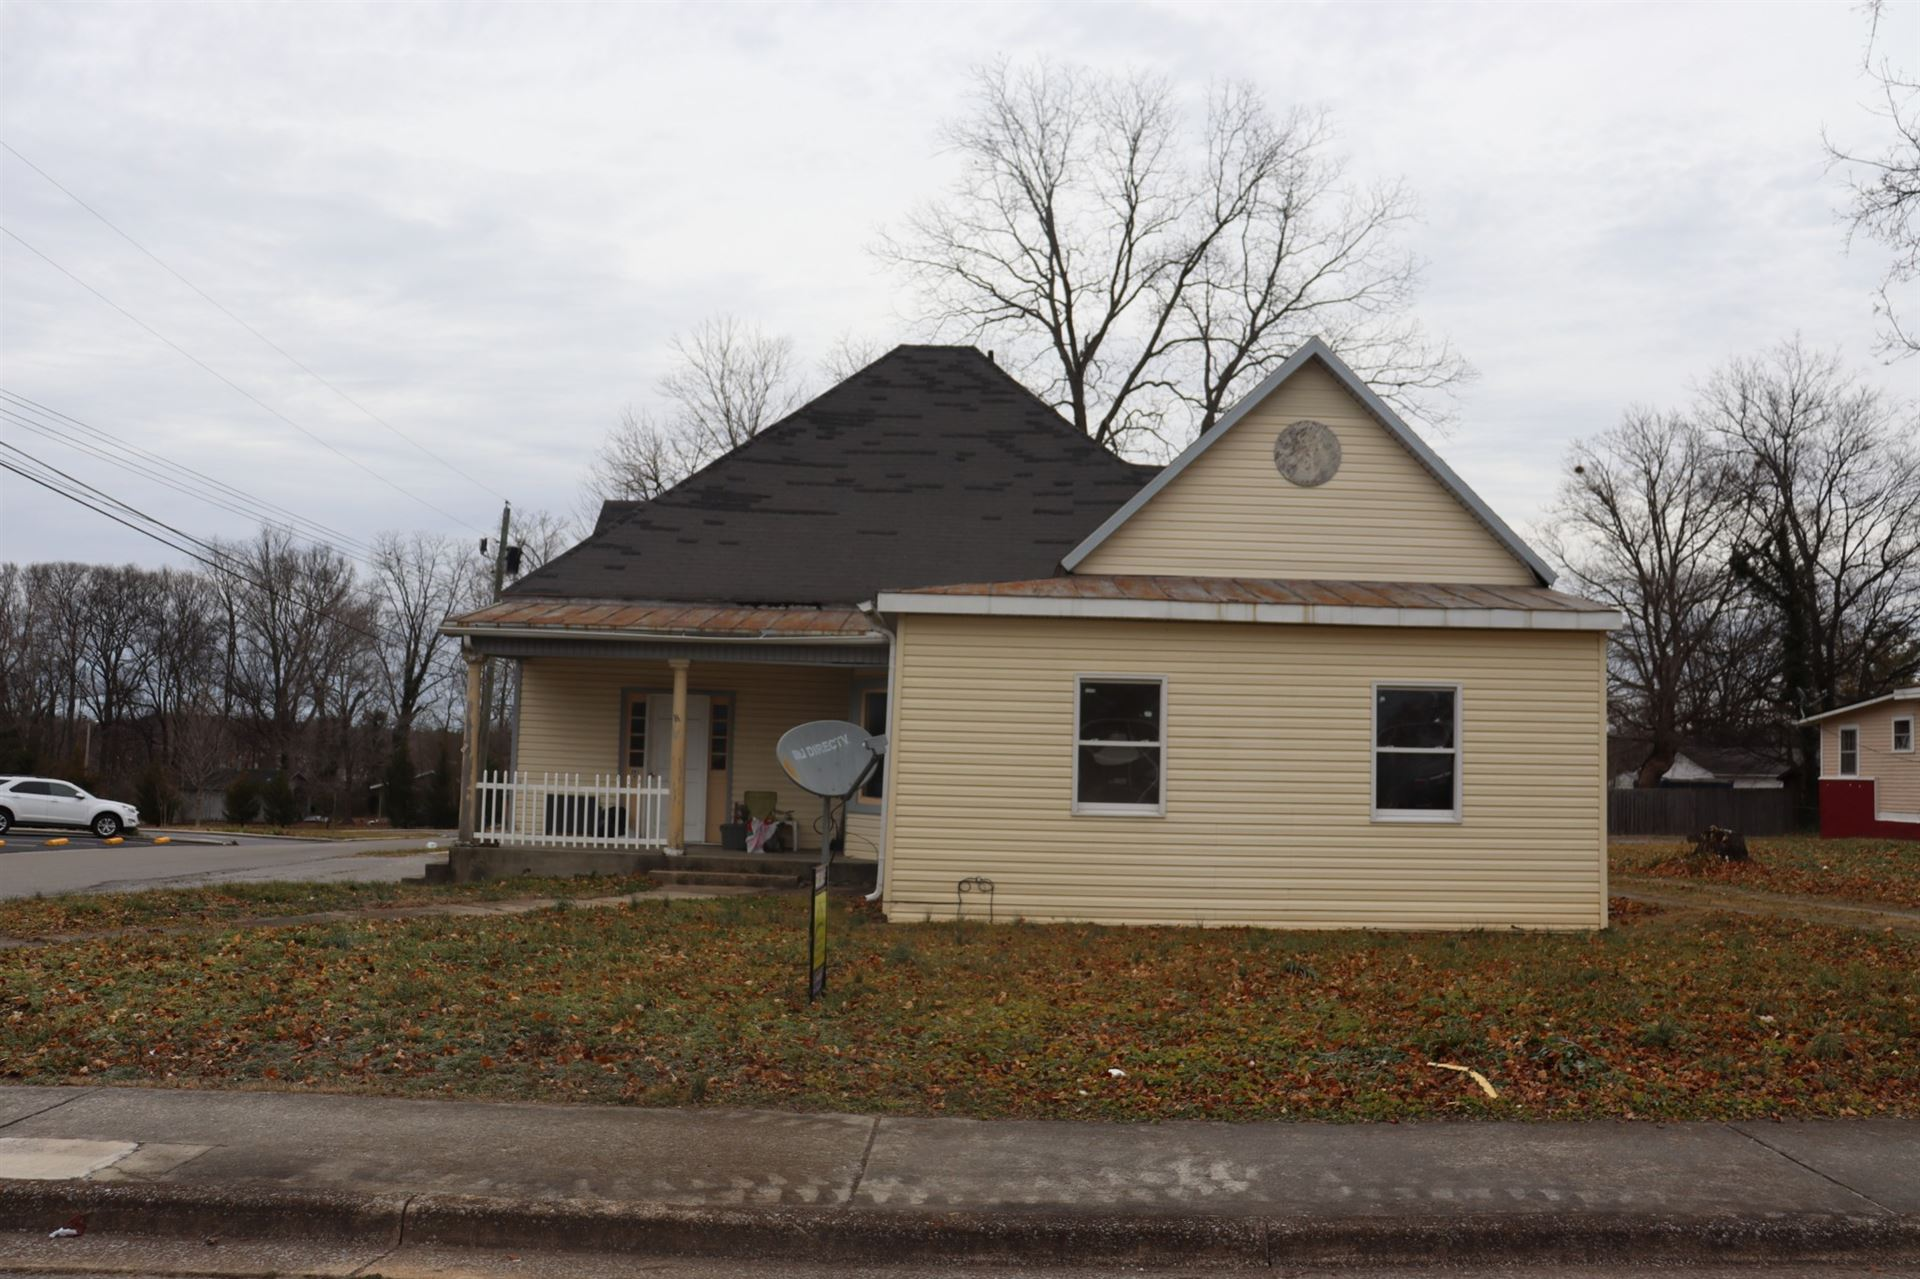 201 2nd Ave South & Porter St., Winchester, TN 37398 - MLS#: 2226329